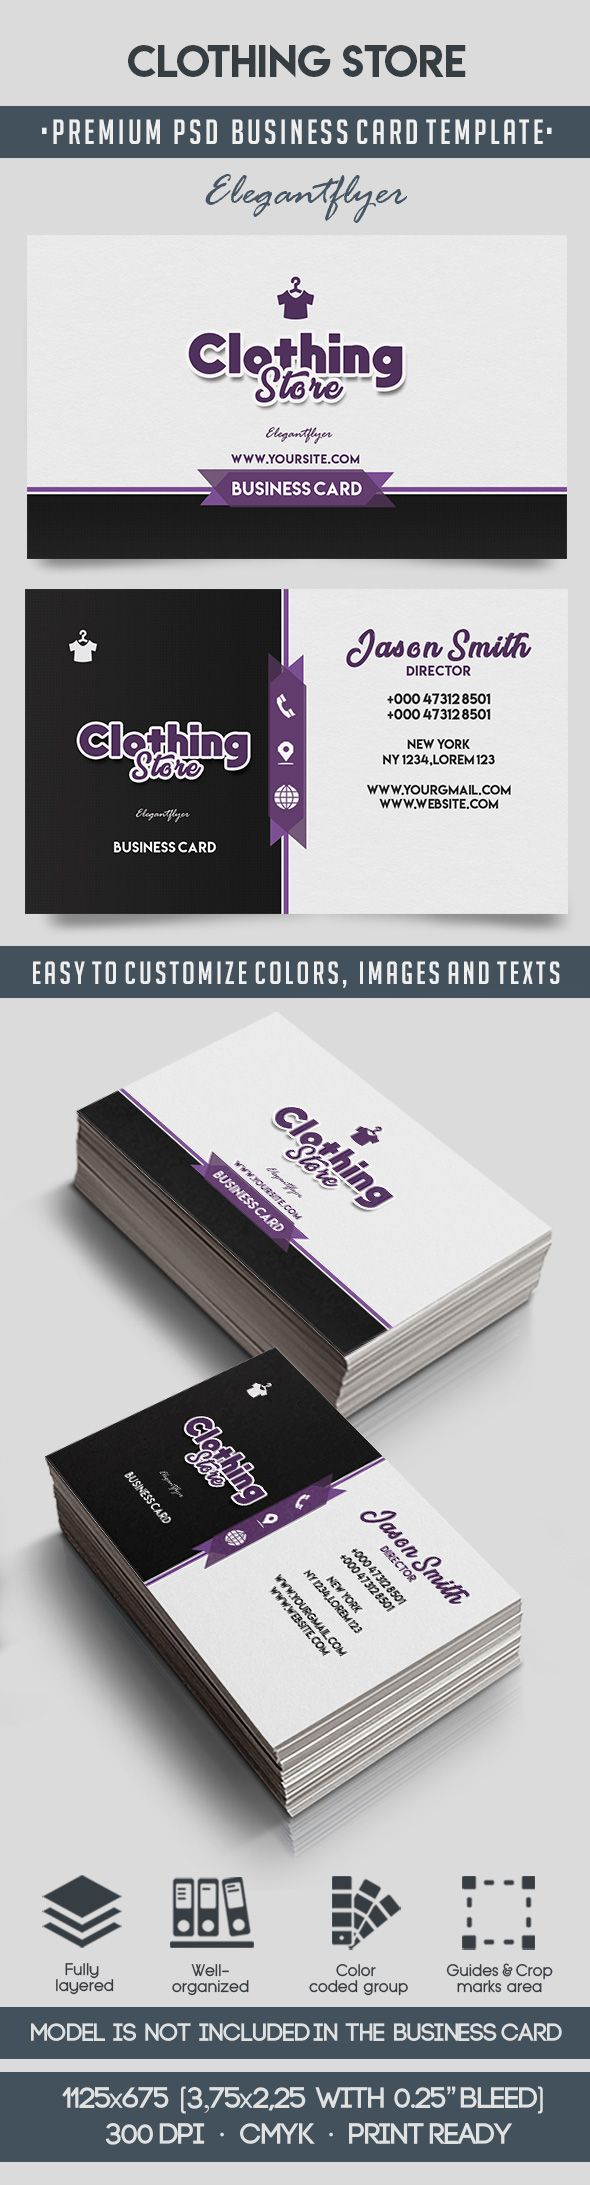 Clothing Store – Business Card Templates PSD – by ElegantFlyer